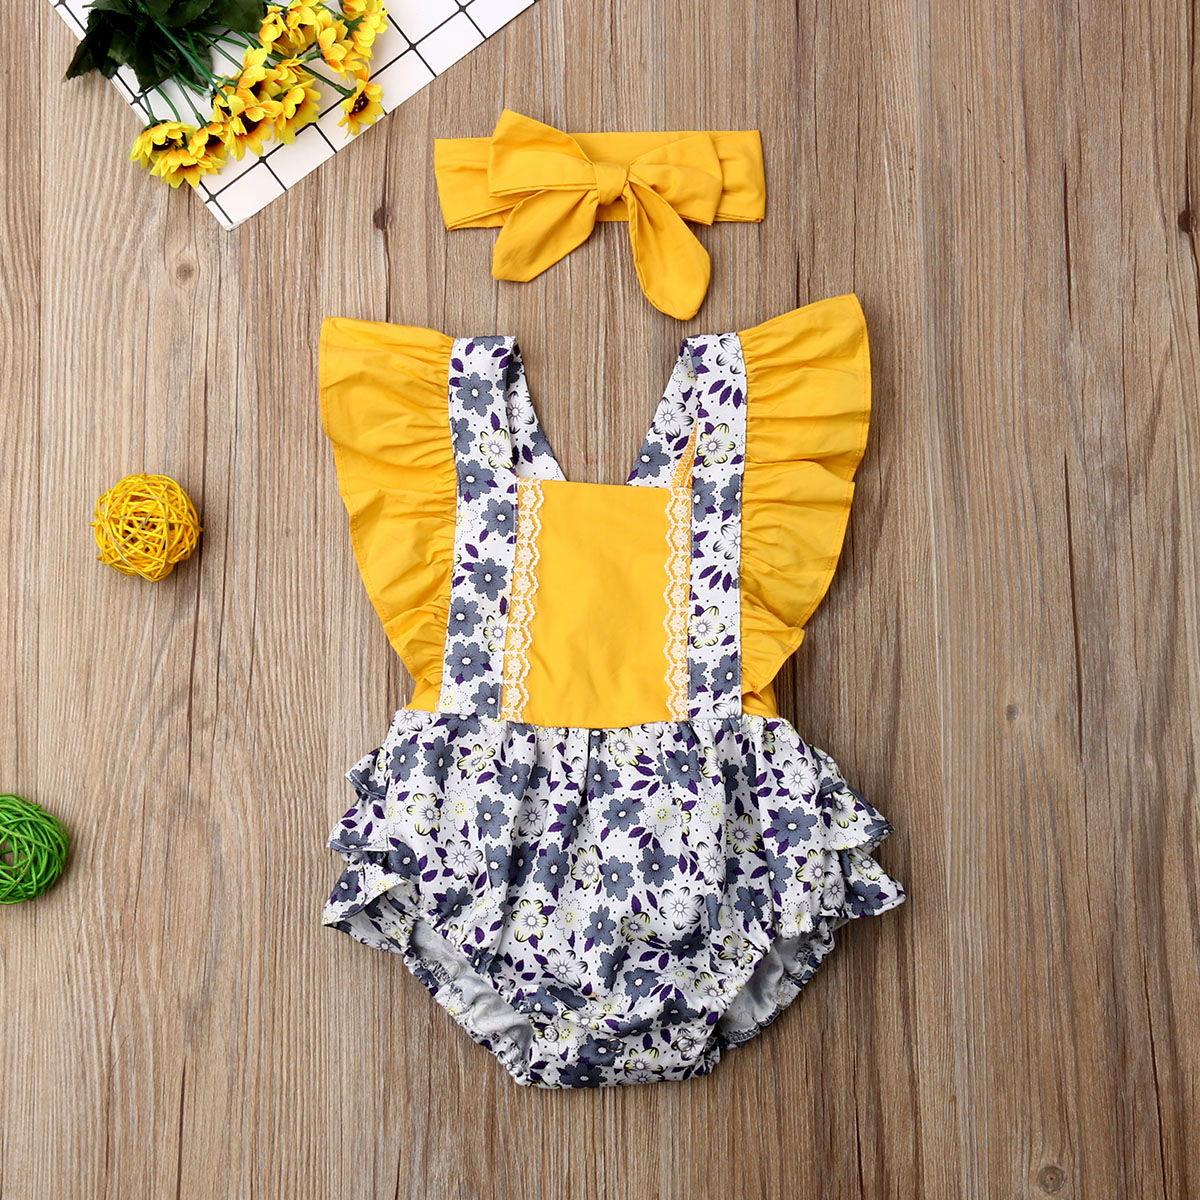 Pudcoco Newborn Baby Girl Clothes Fly Sleeve Ruffle Flower Print Romper Jumpsuit Headband 2Pcs Outfits Summer Clothes